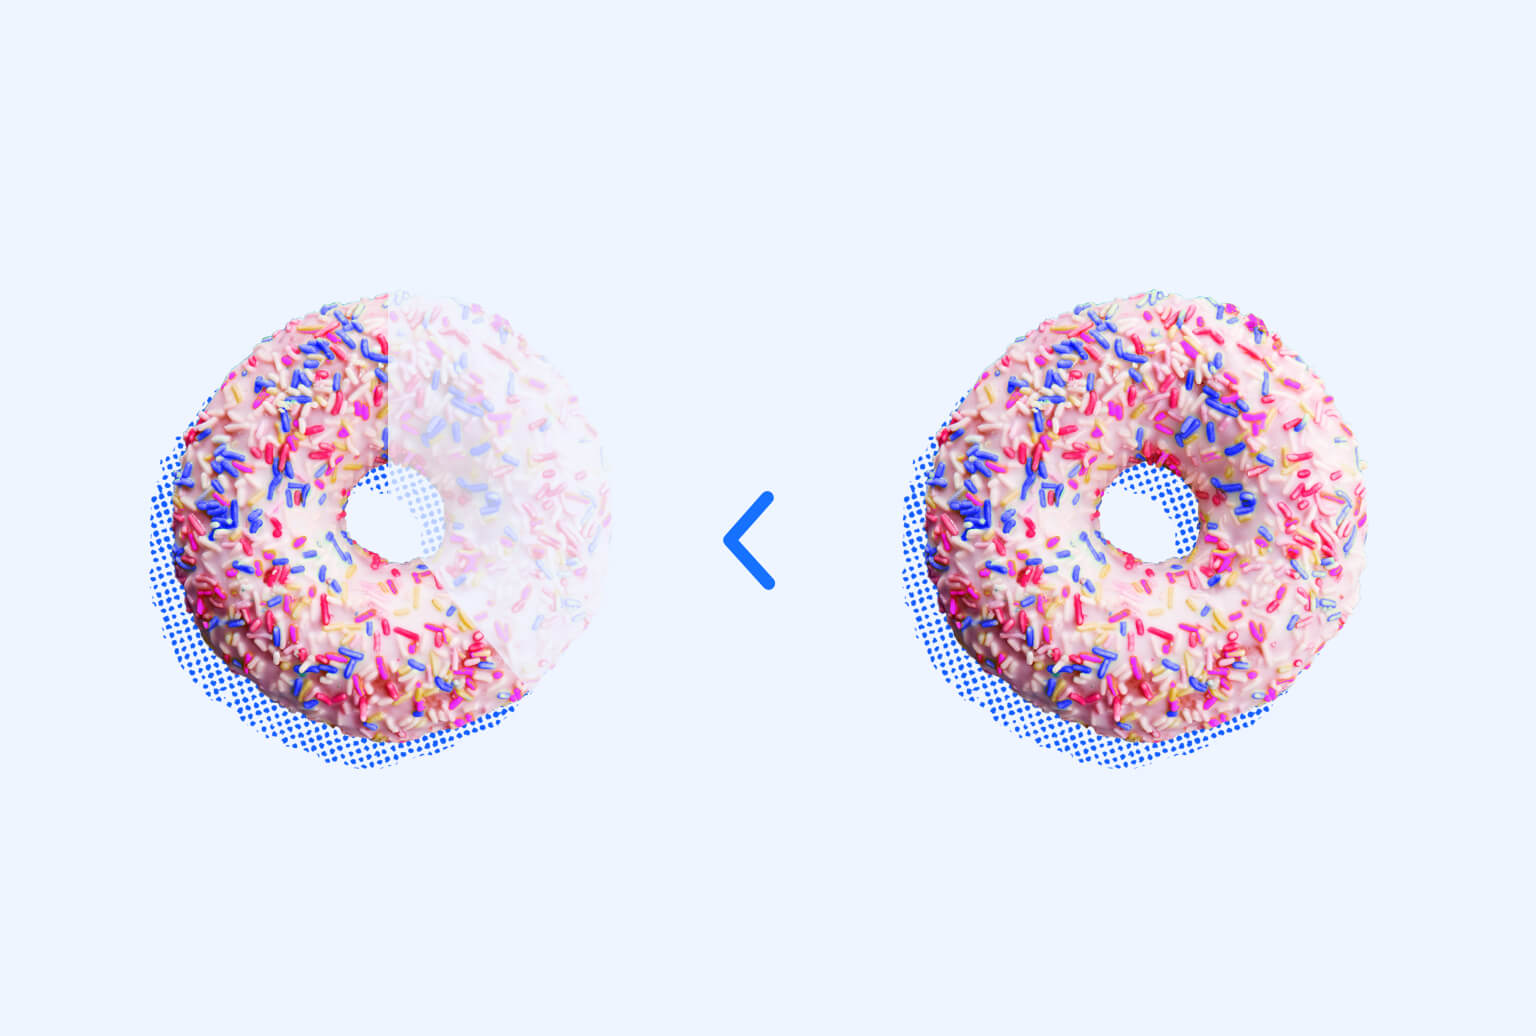 Side-by-side of two pink sprinkle donuts where one is missing two thirds and the other is whole. A greater than symbol appears in the middle.